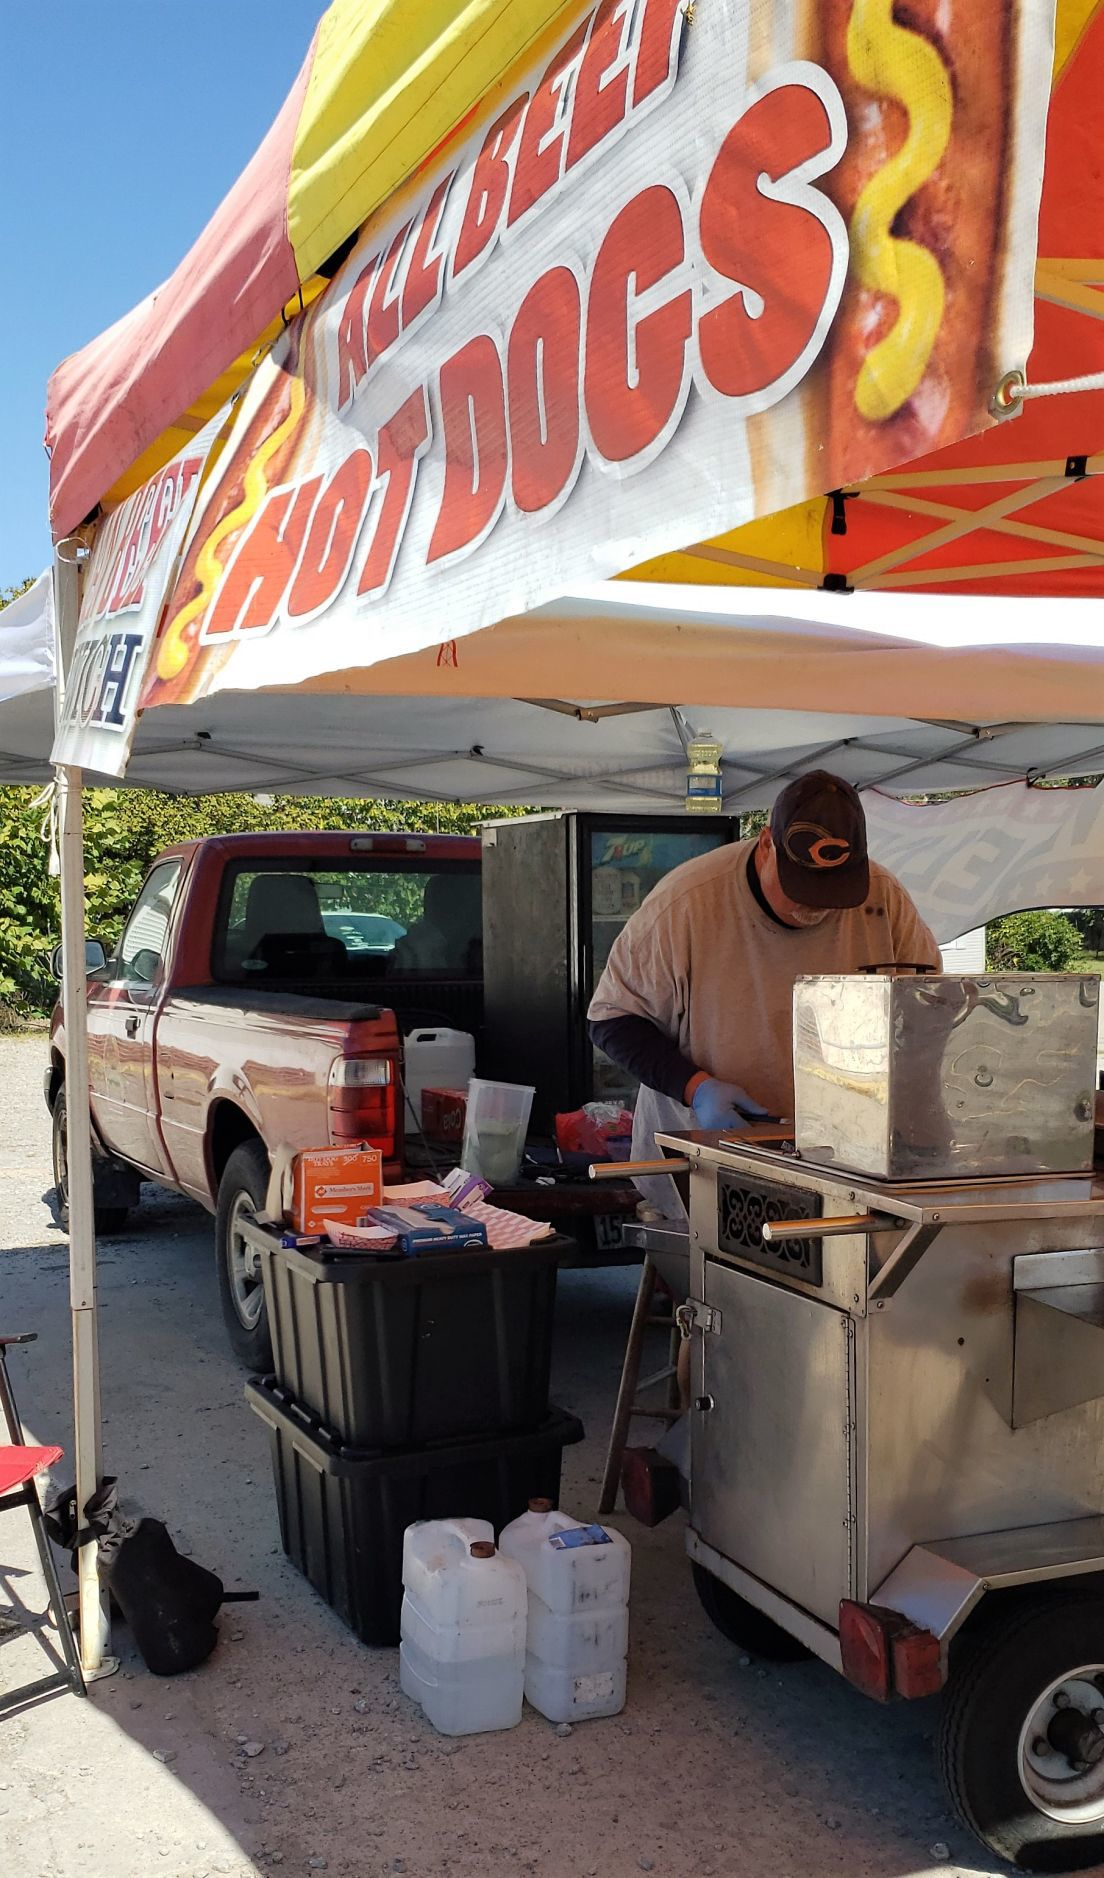 101019-nws-hot-dogs-01.jpg